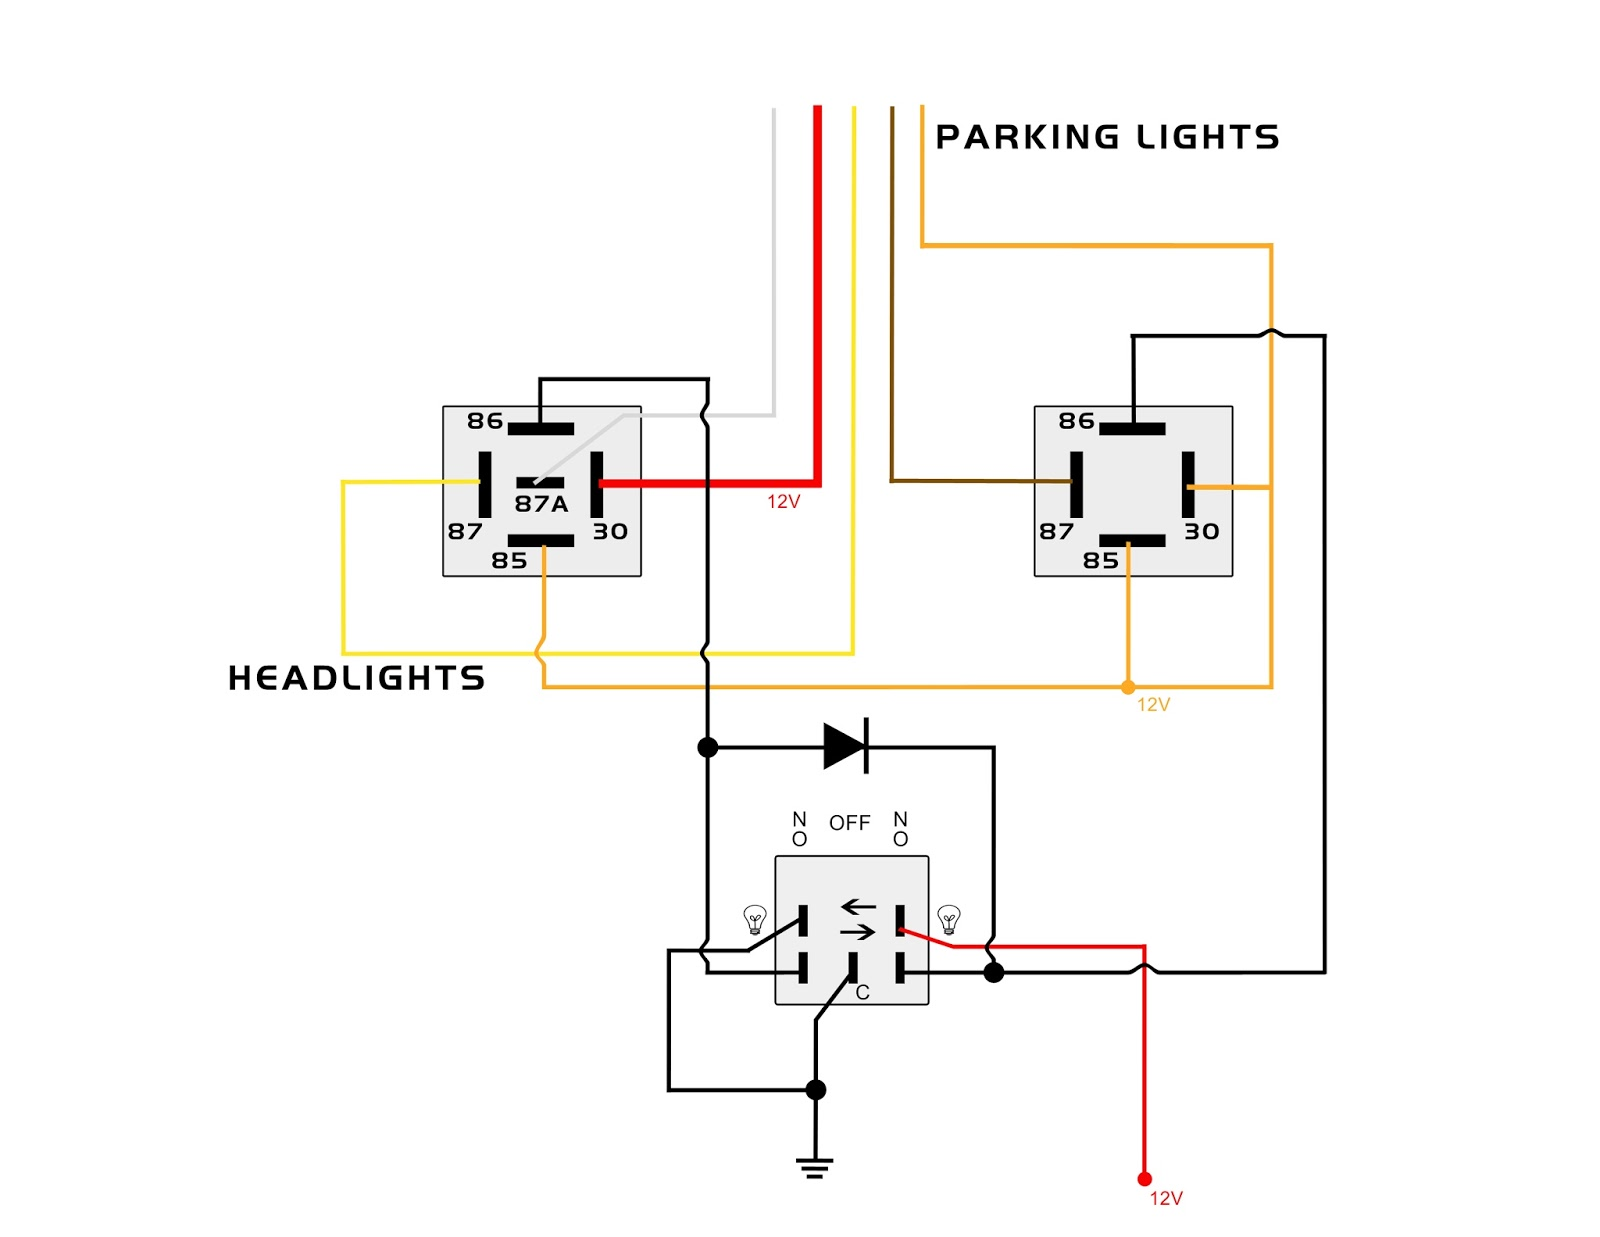 Wiring Diagram Parking Lot Lights : My knight rider project parking and headlights lower